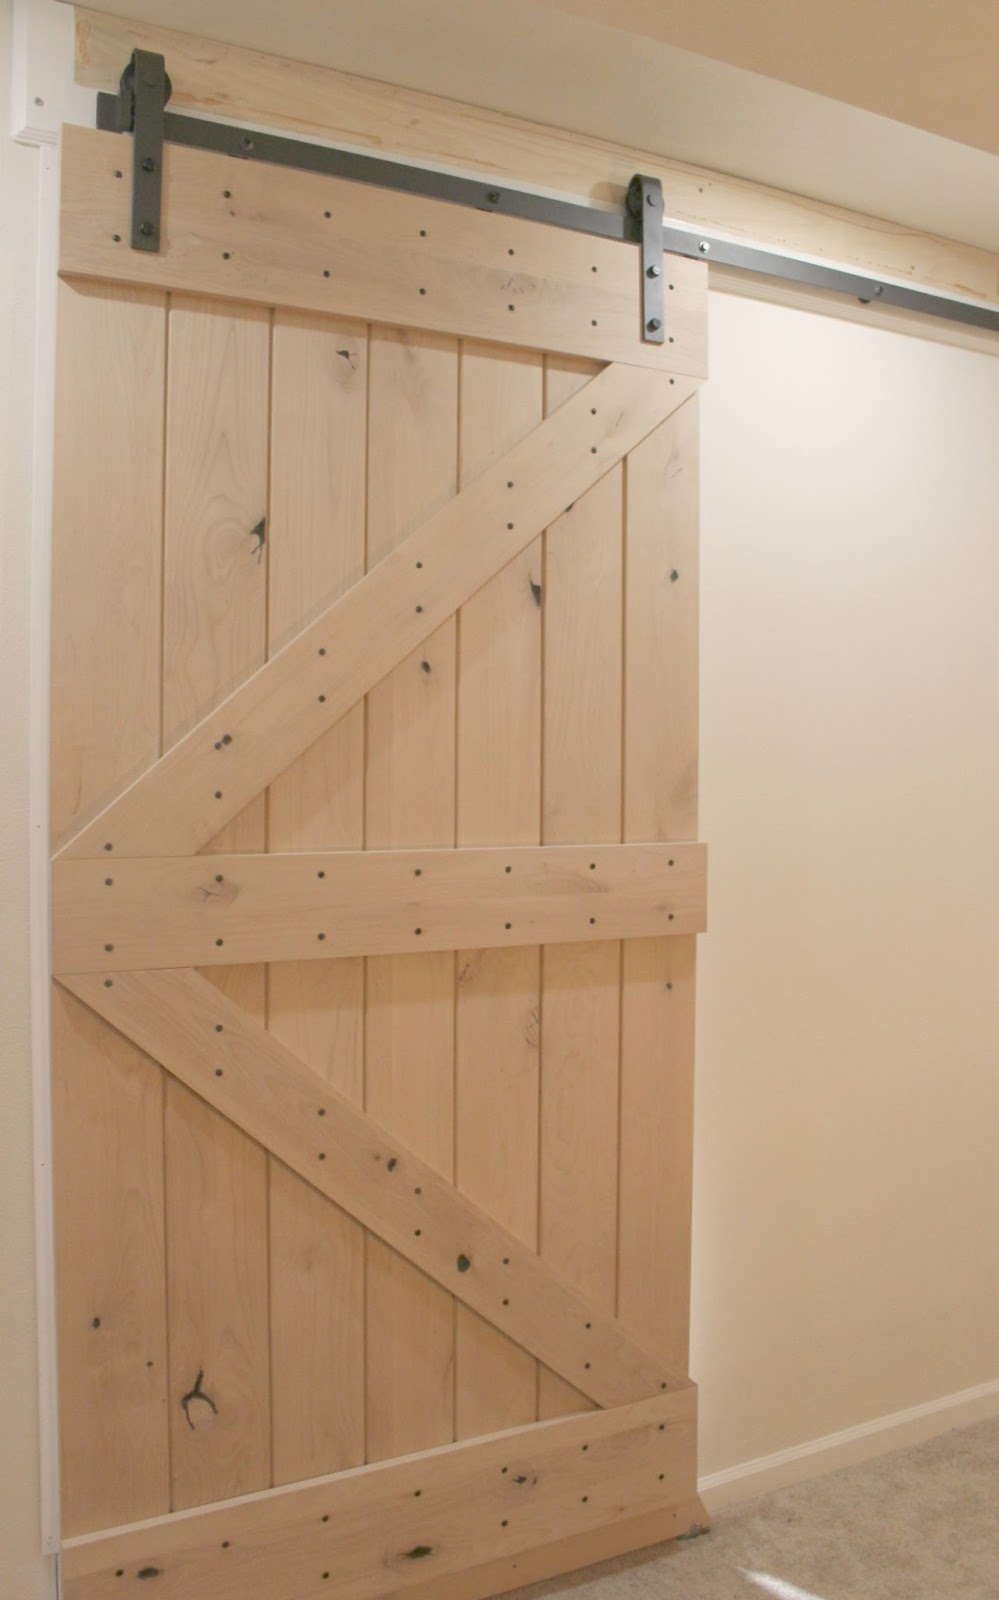 Pacific Entries rustic knotty alder barn door Hello Lovely Studio